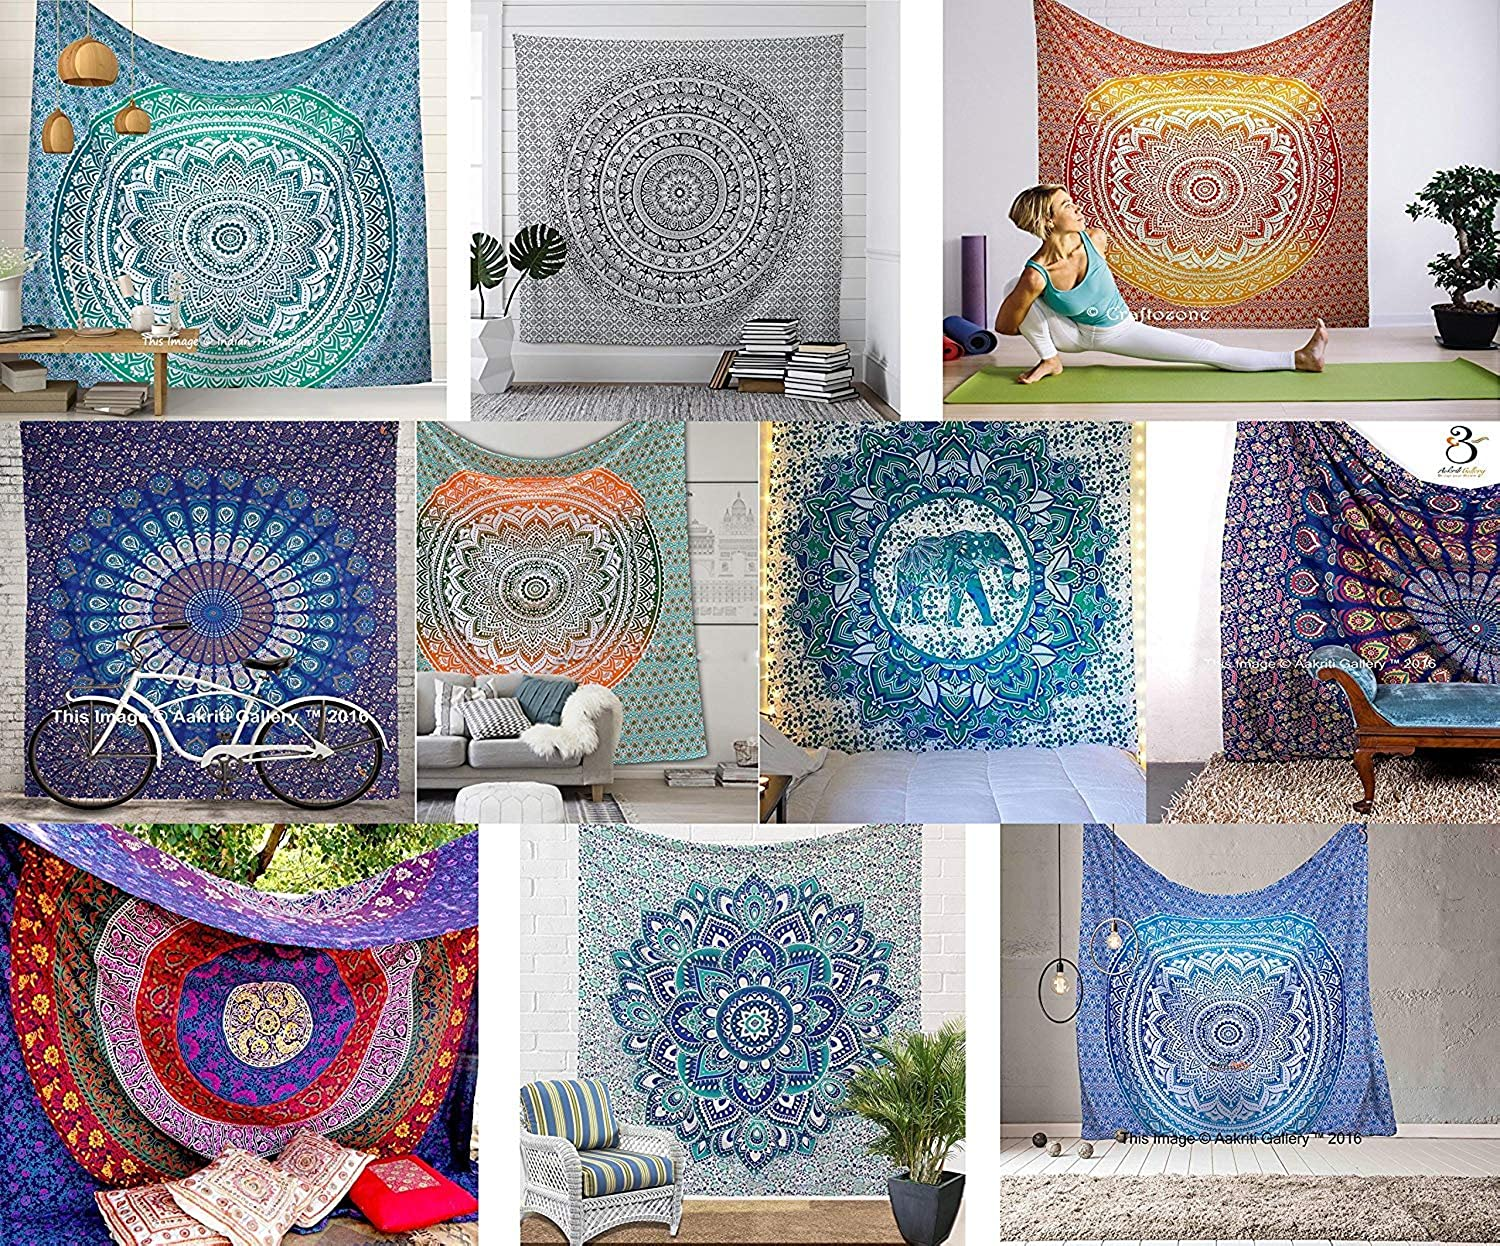 Aakriti Gallery Assorted Mix lot Tapestry Queen Hippie Flower Beautiful Artwork Wall Decor Mandala Beach Bedspread Intricate Indian Bedspread Tapestries 92x82 Inches (Lot of 20)